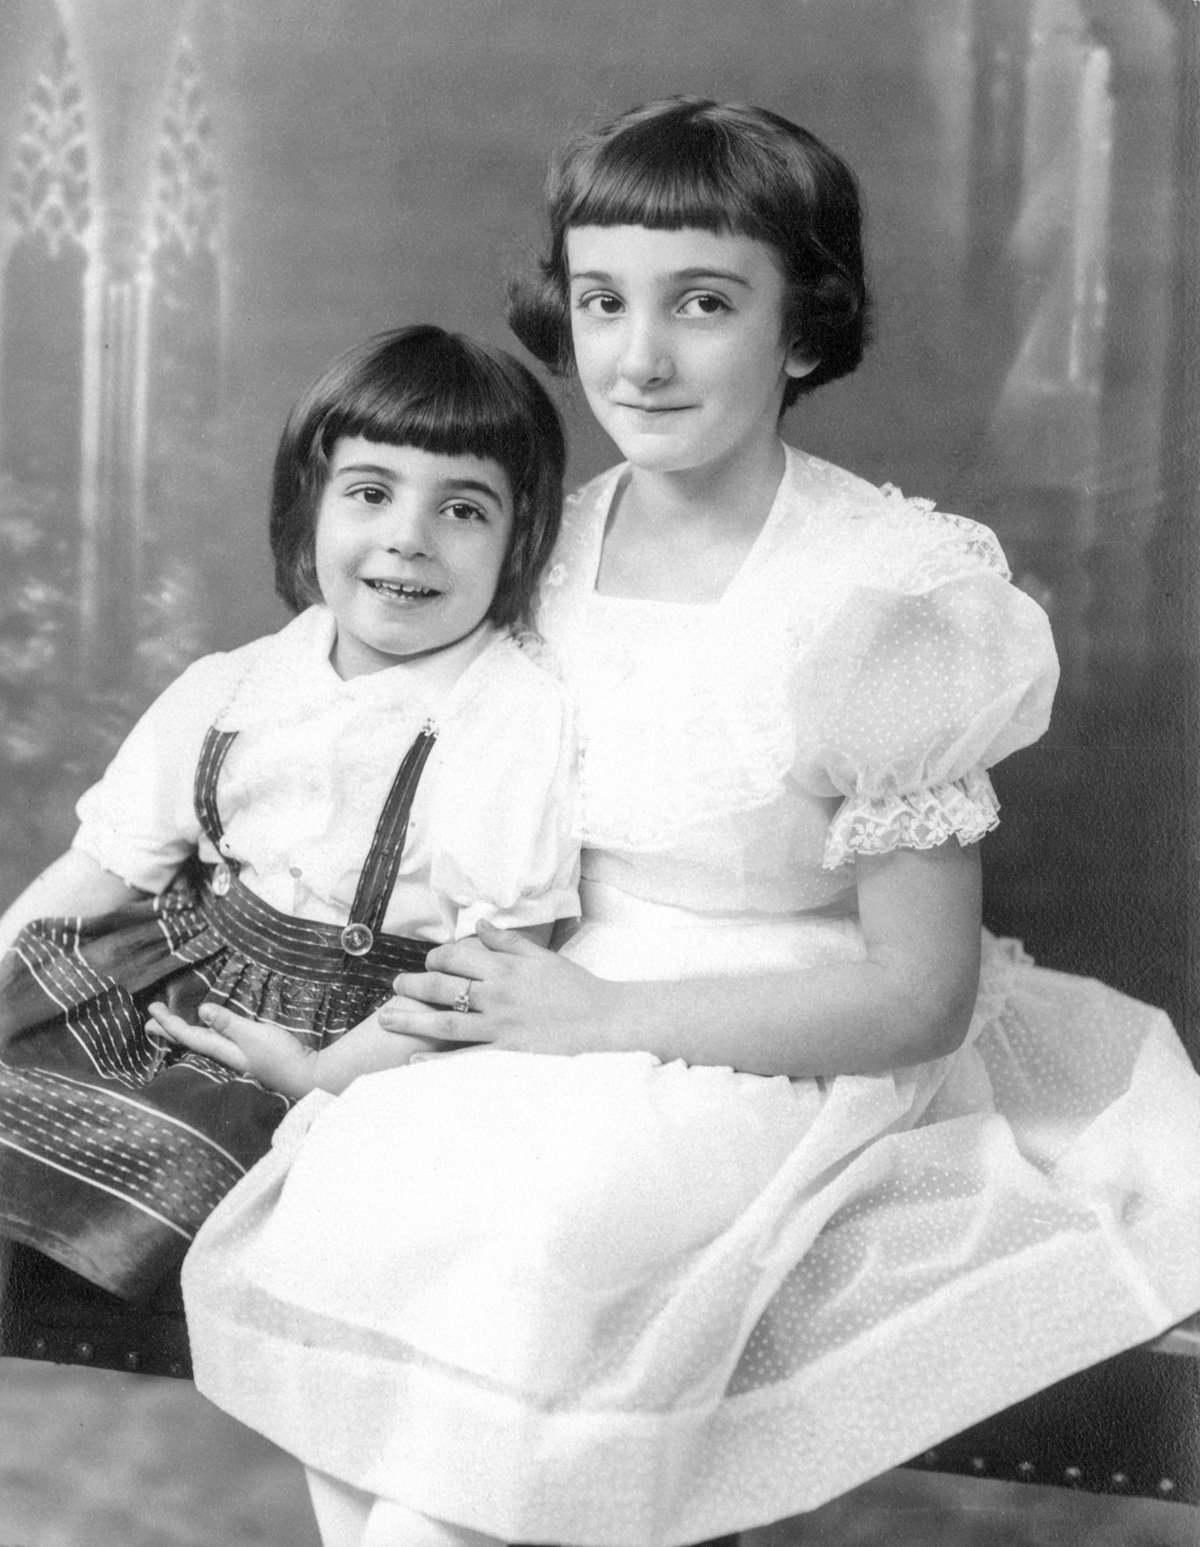 Sis and me in my first communion photo, circa 1954